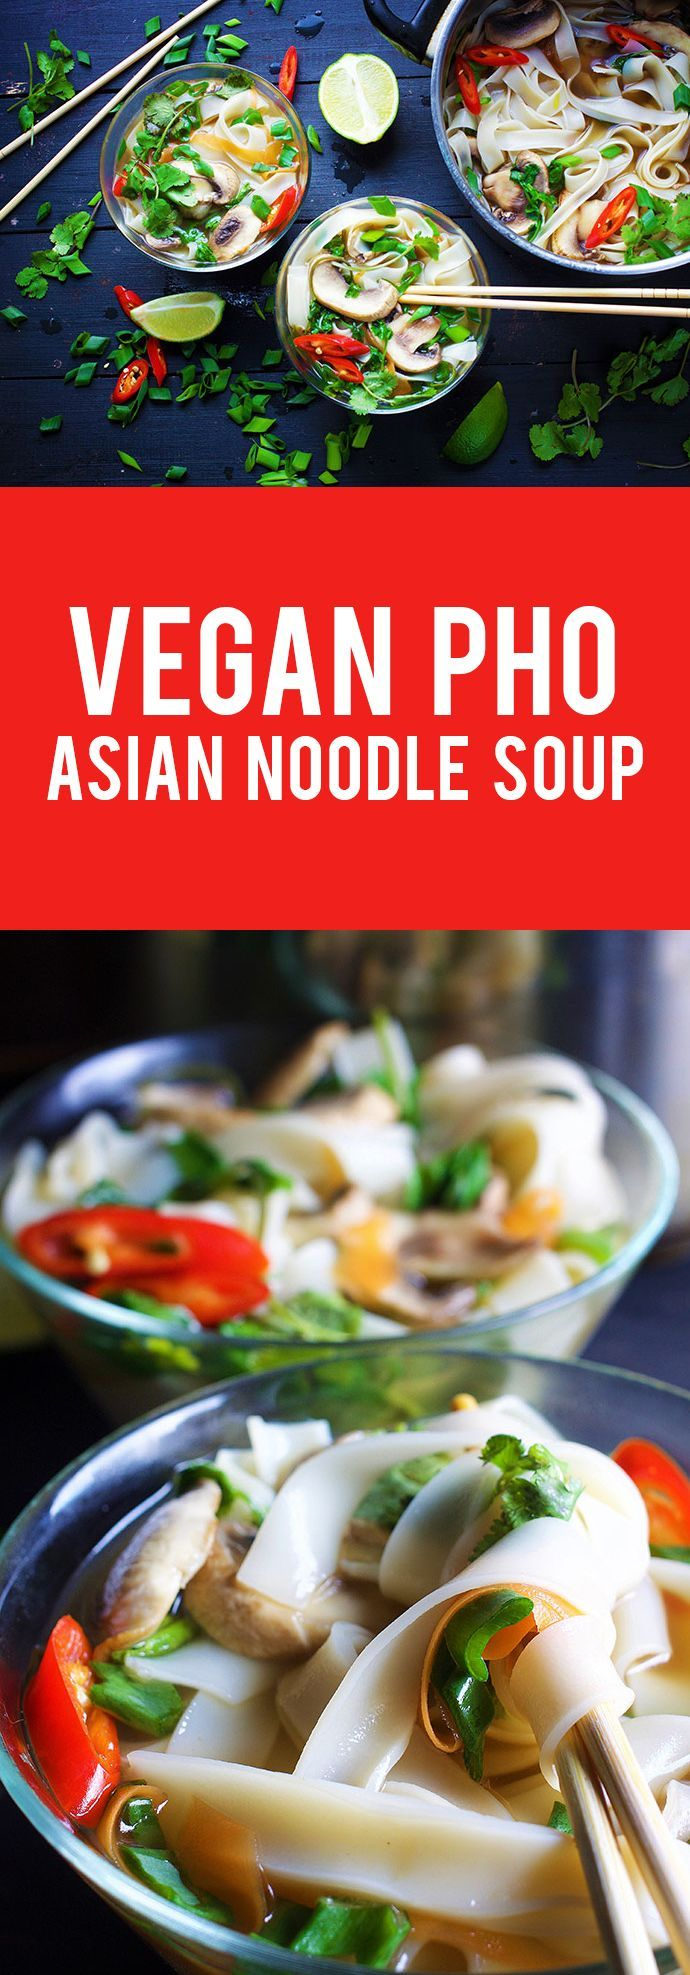 Here's a simple, yet filling vegan Pho soup (vegan Asian noodle soup) recipe that bursts with flavors and has a subtle spicy taste. It's similar to the popular Vietnamese Pho soup recipe, turned vegan. #pho #asian #soup